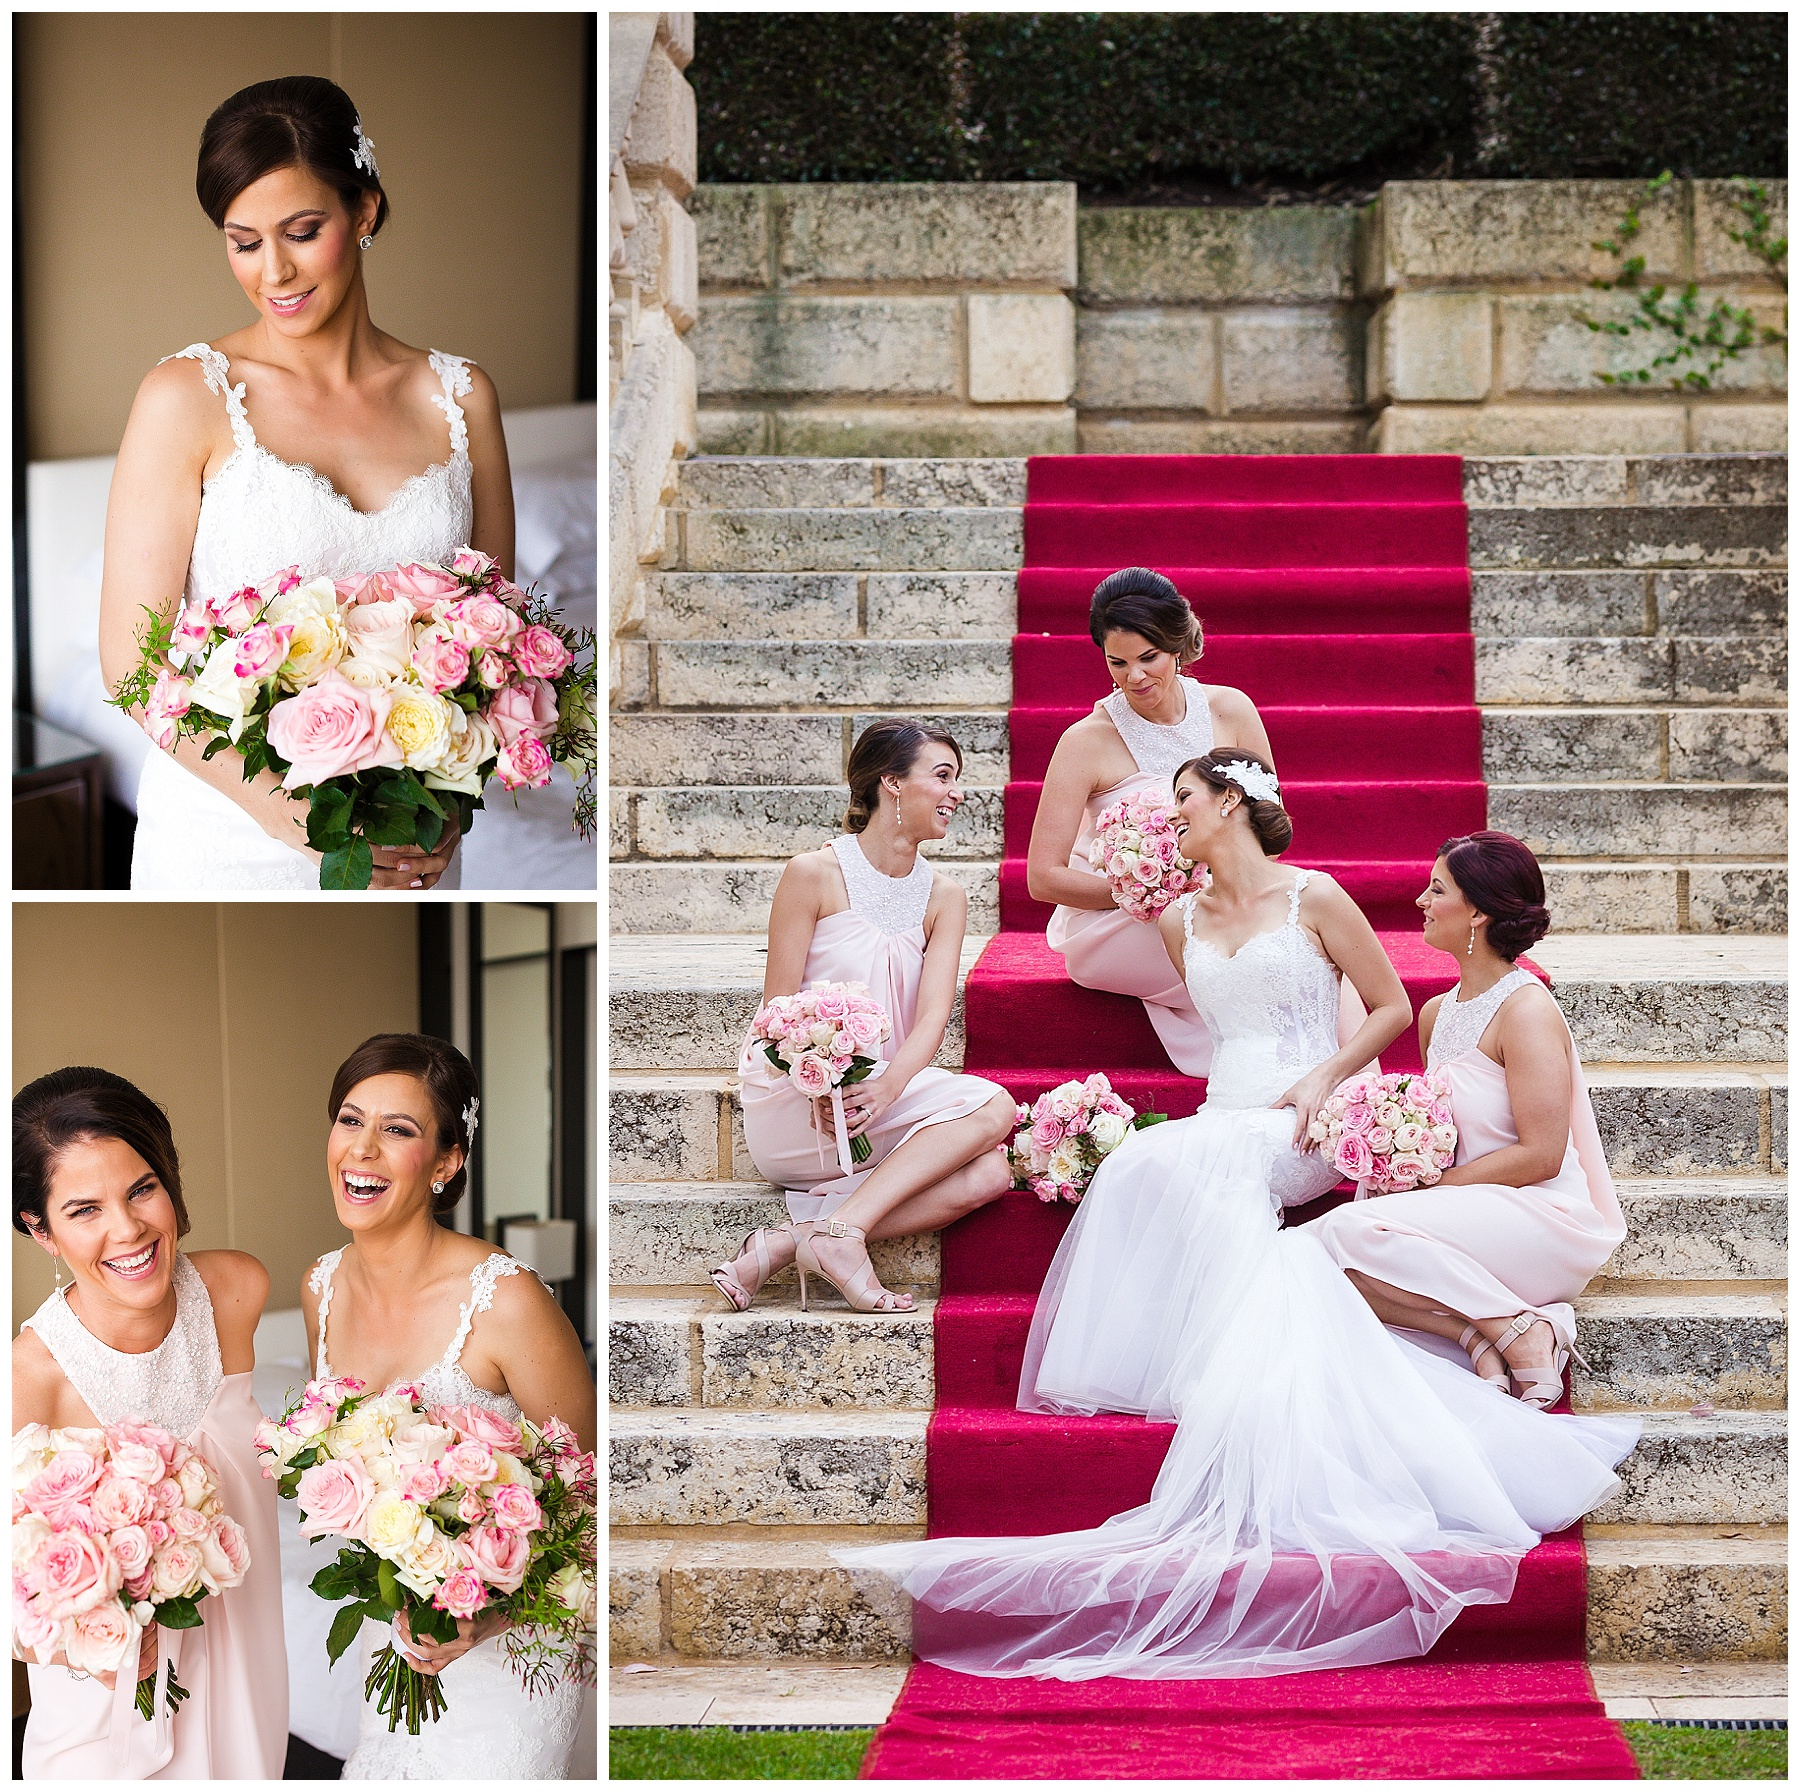 Wedding flowers are so varied this season, we look at wedding photography of some of our favourites.